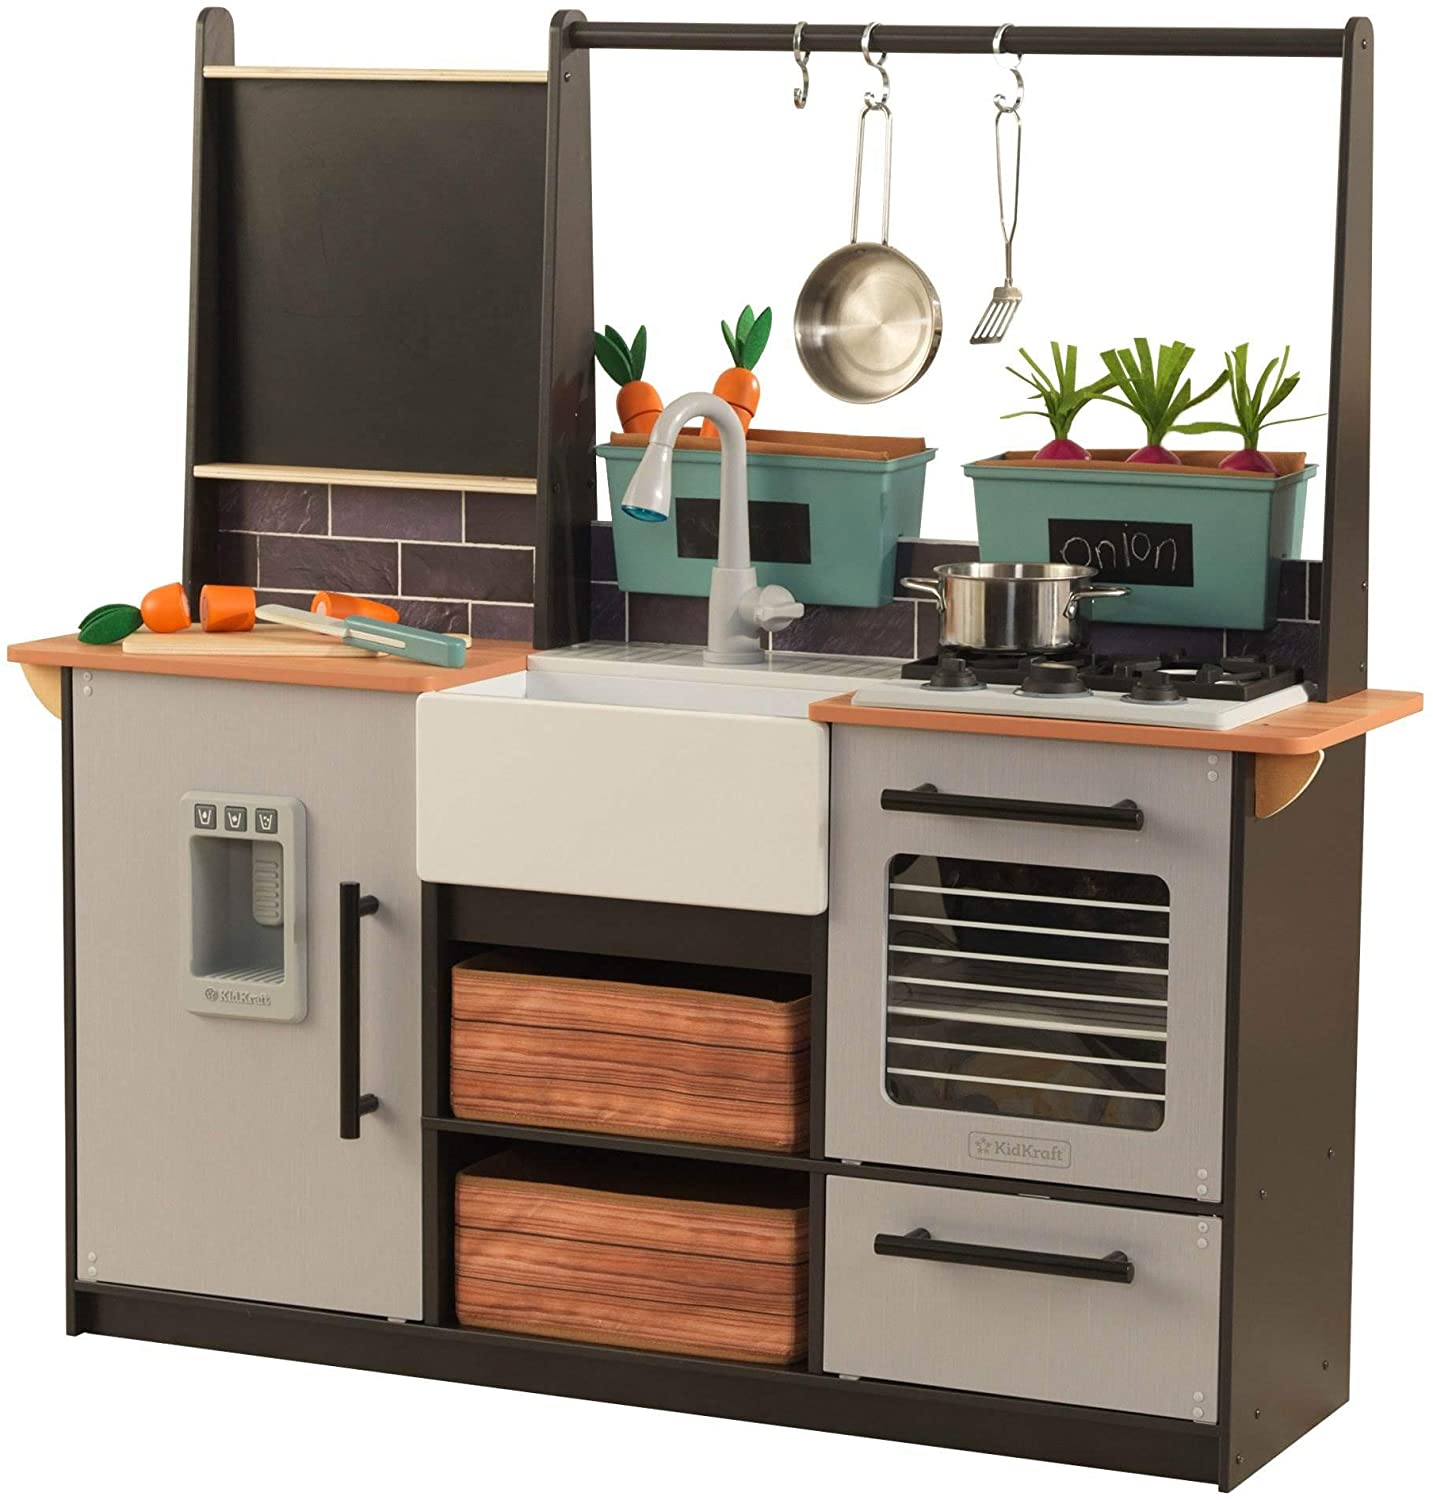 KidKraft Farm To Table Kid's Play Kitchen Set